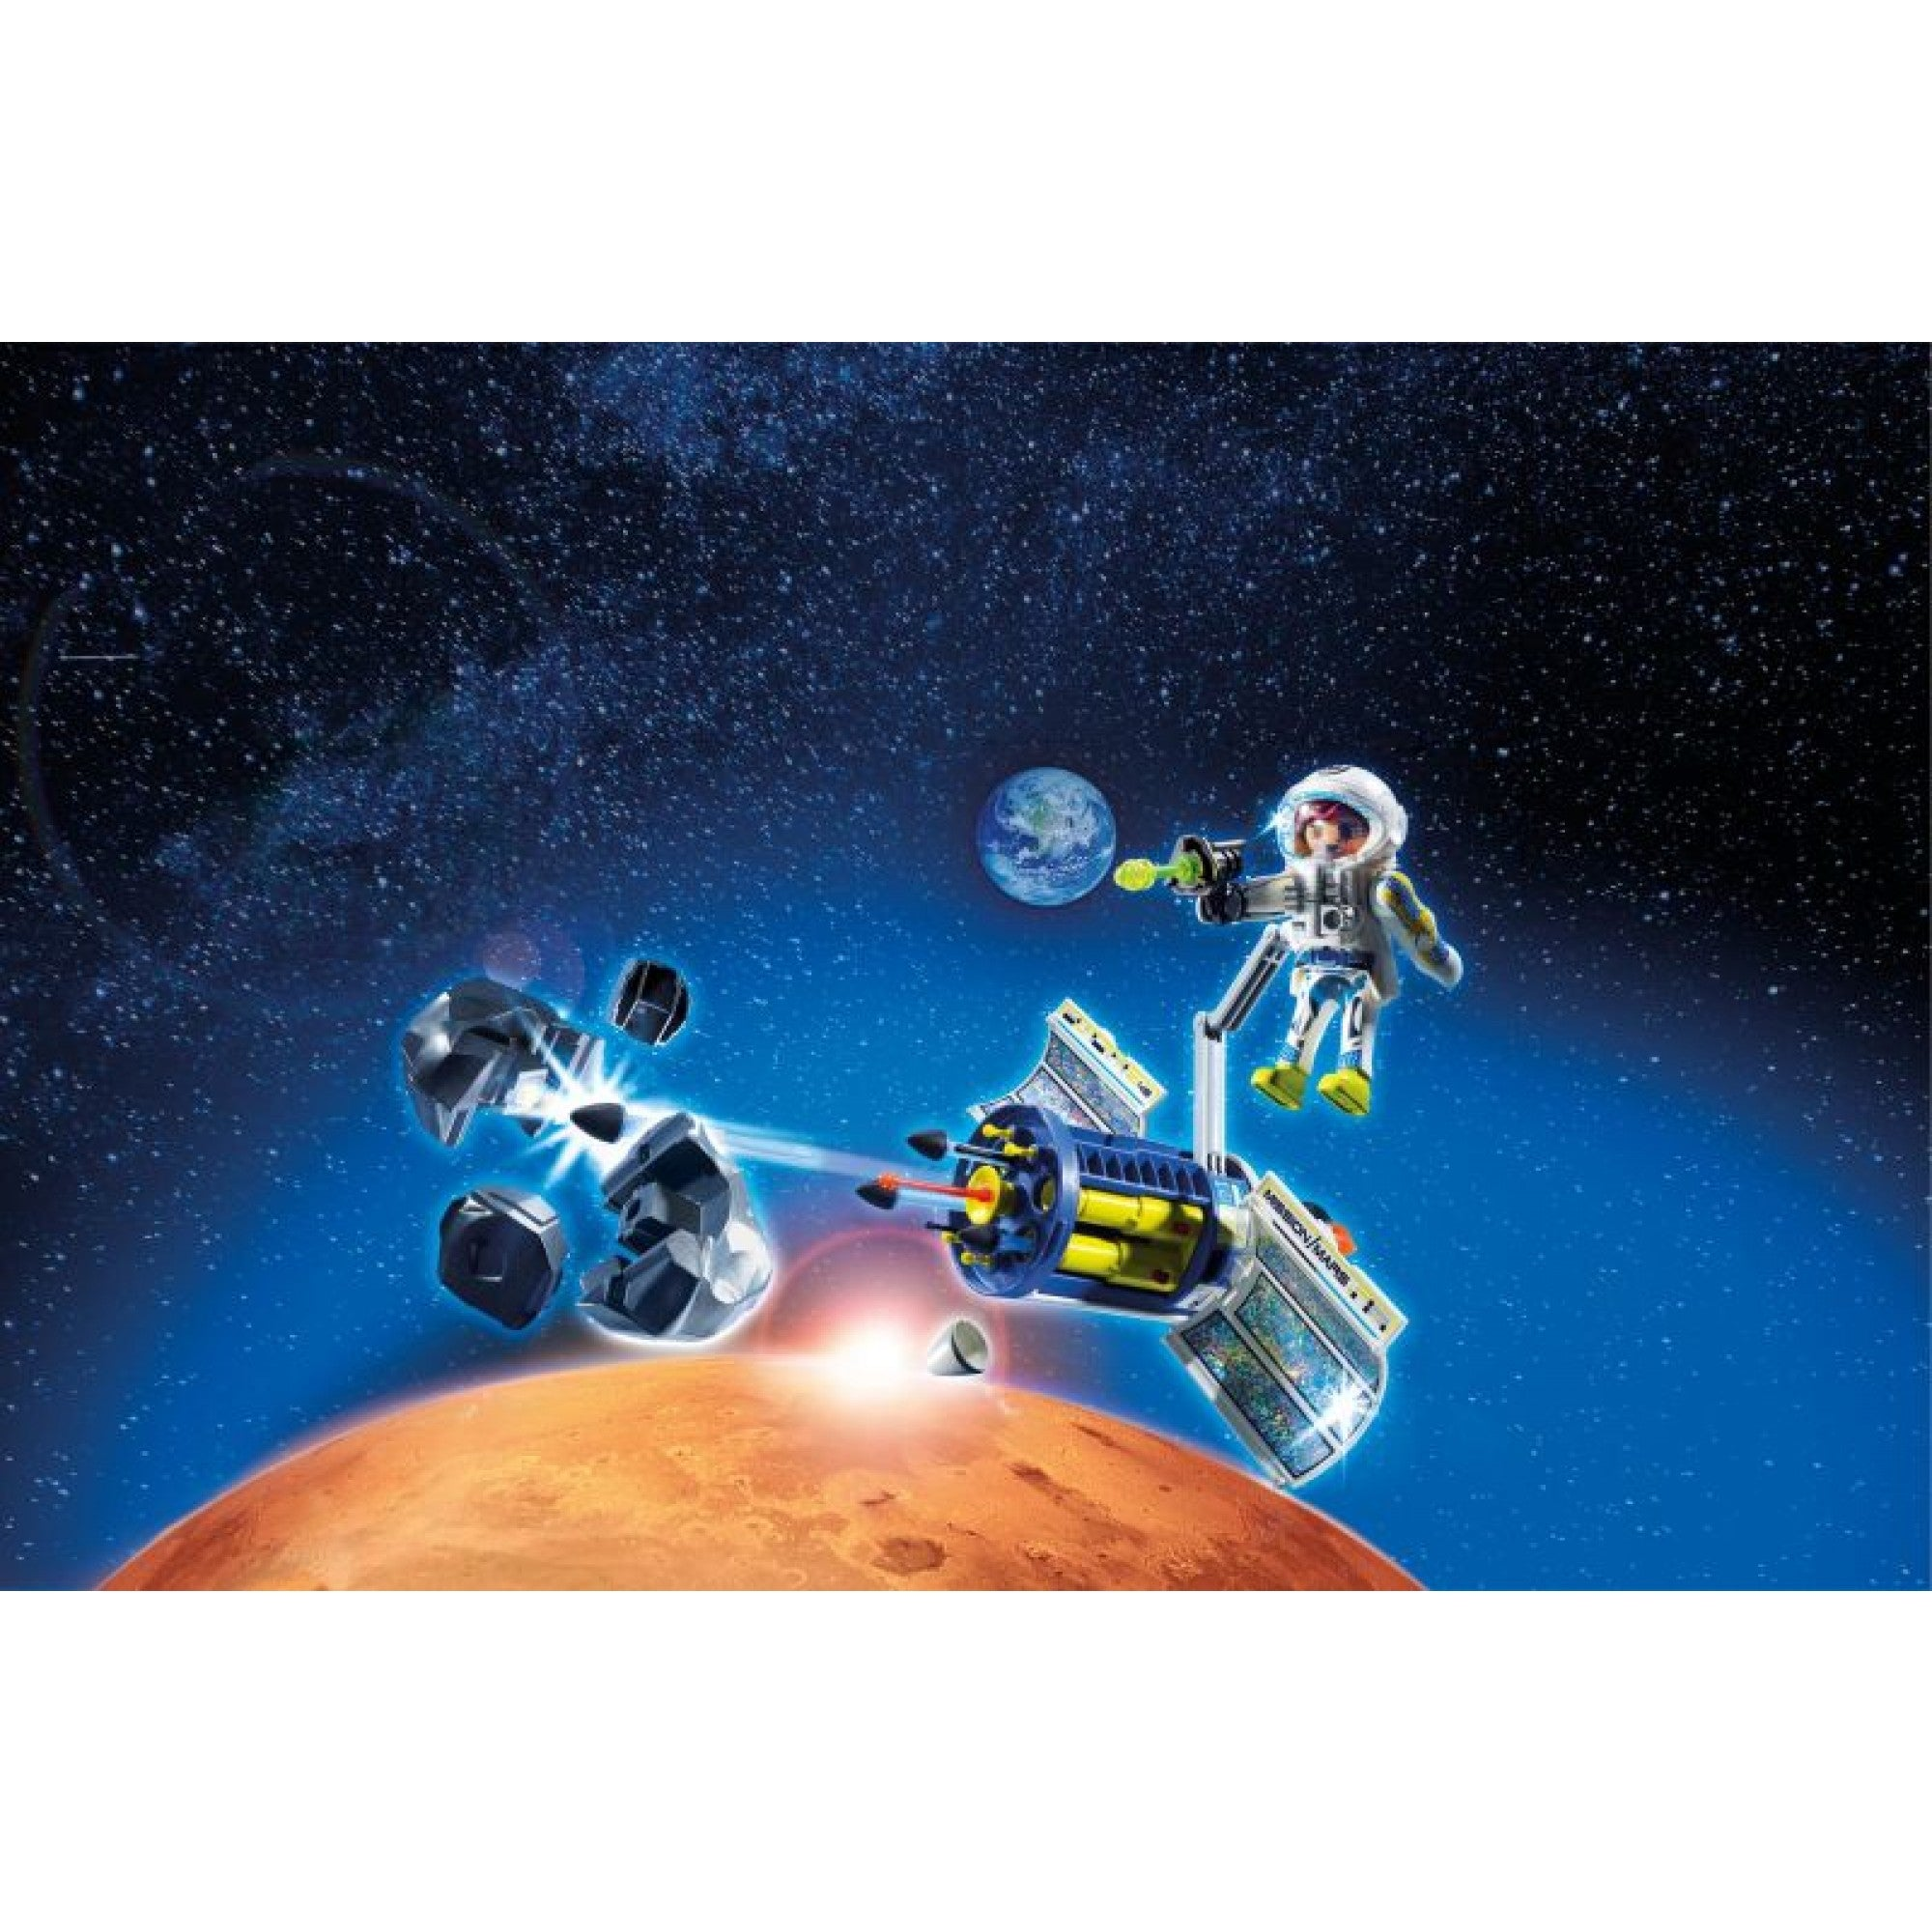 Satellite Meteoroid Laser - Playmobil